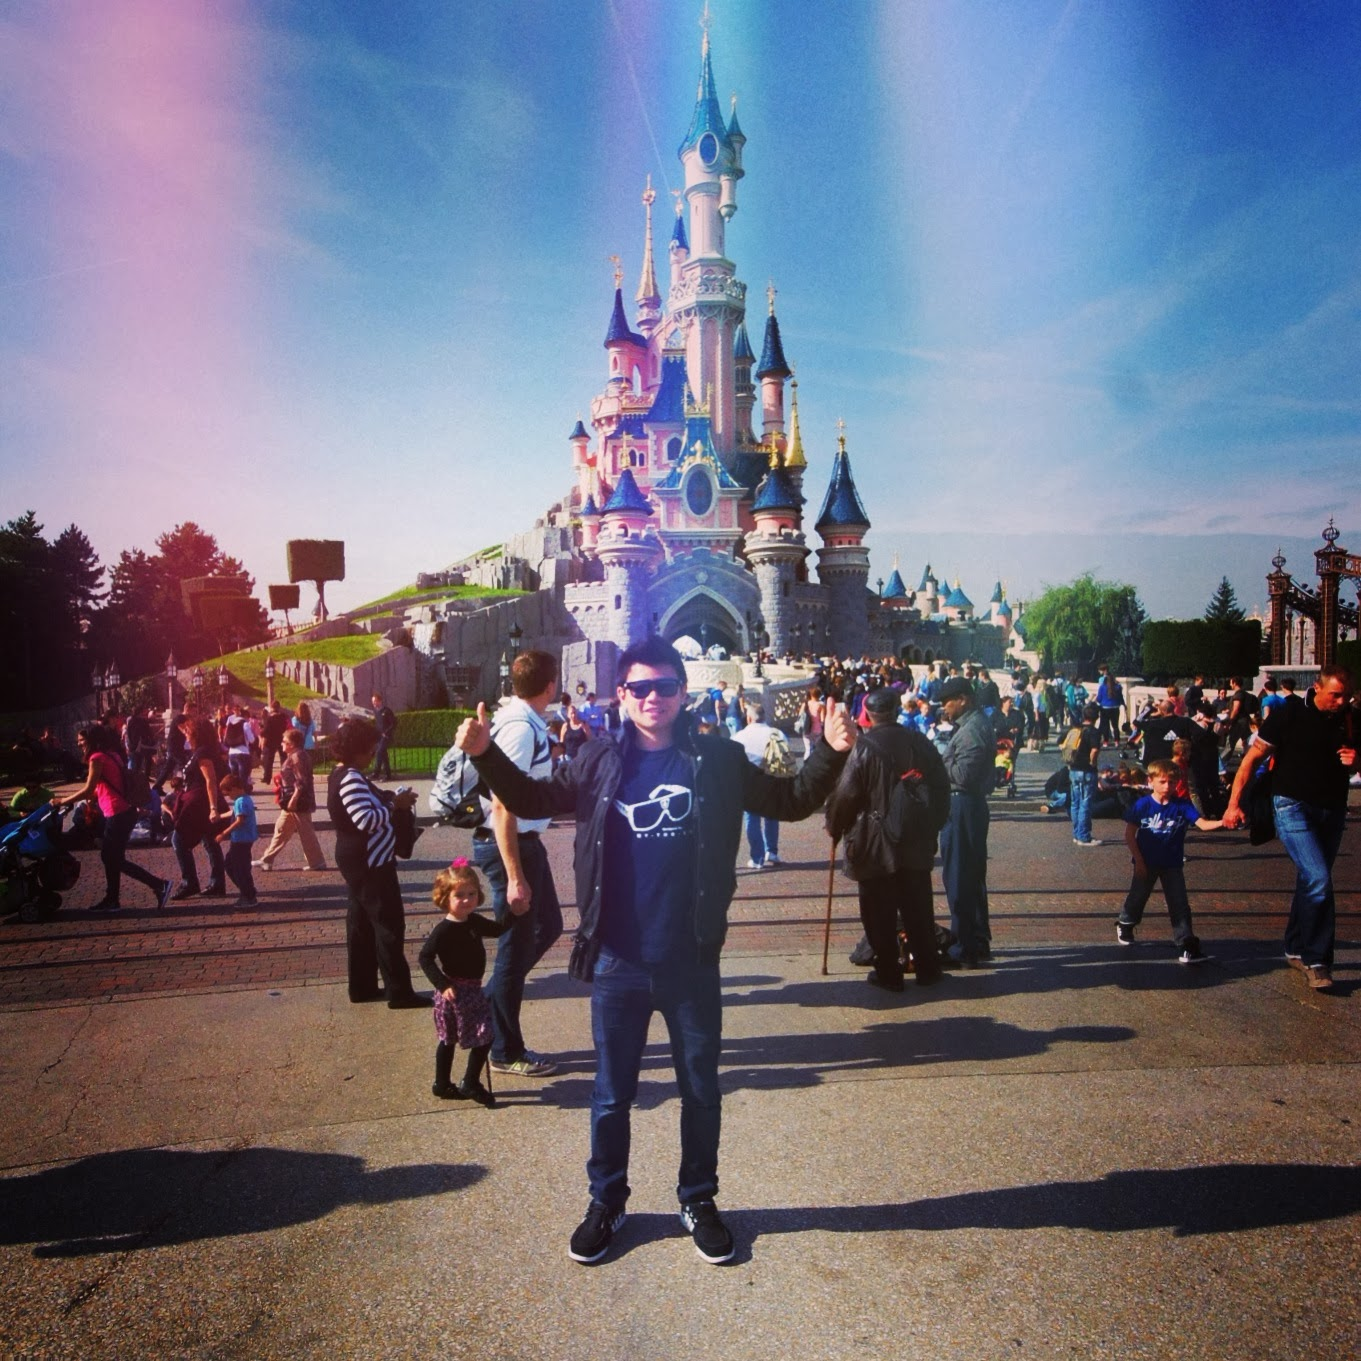 BACK FROM DISNEYLAND PARIS WALT DISNEY STUDIOS!